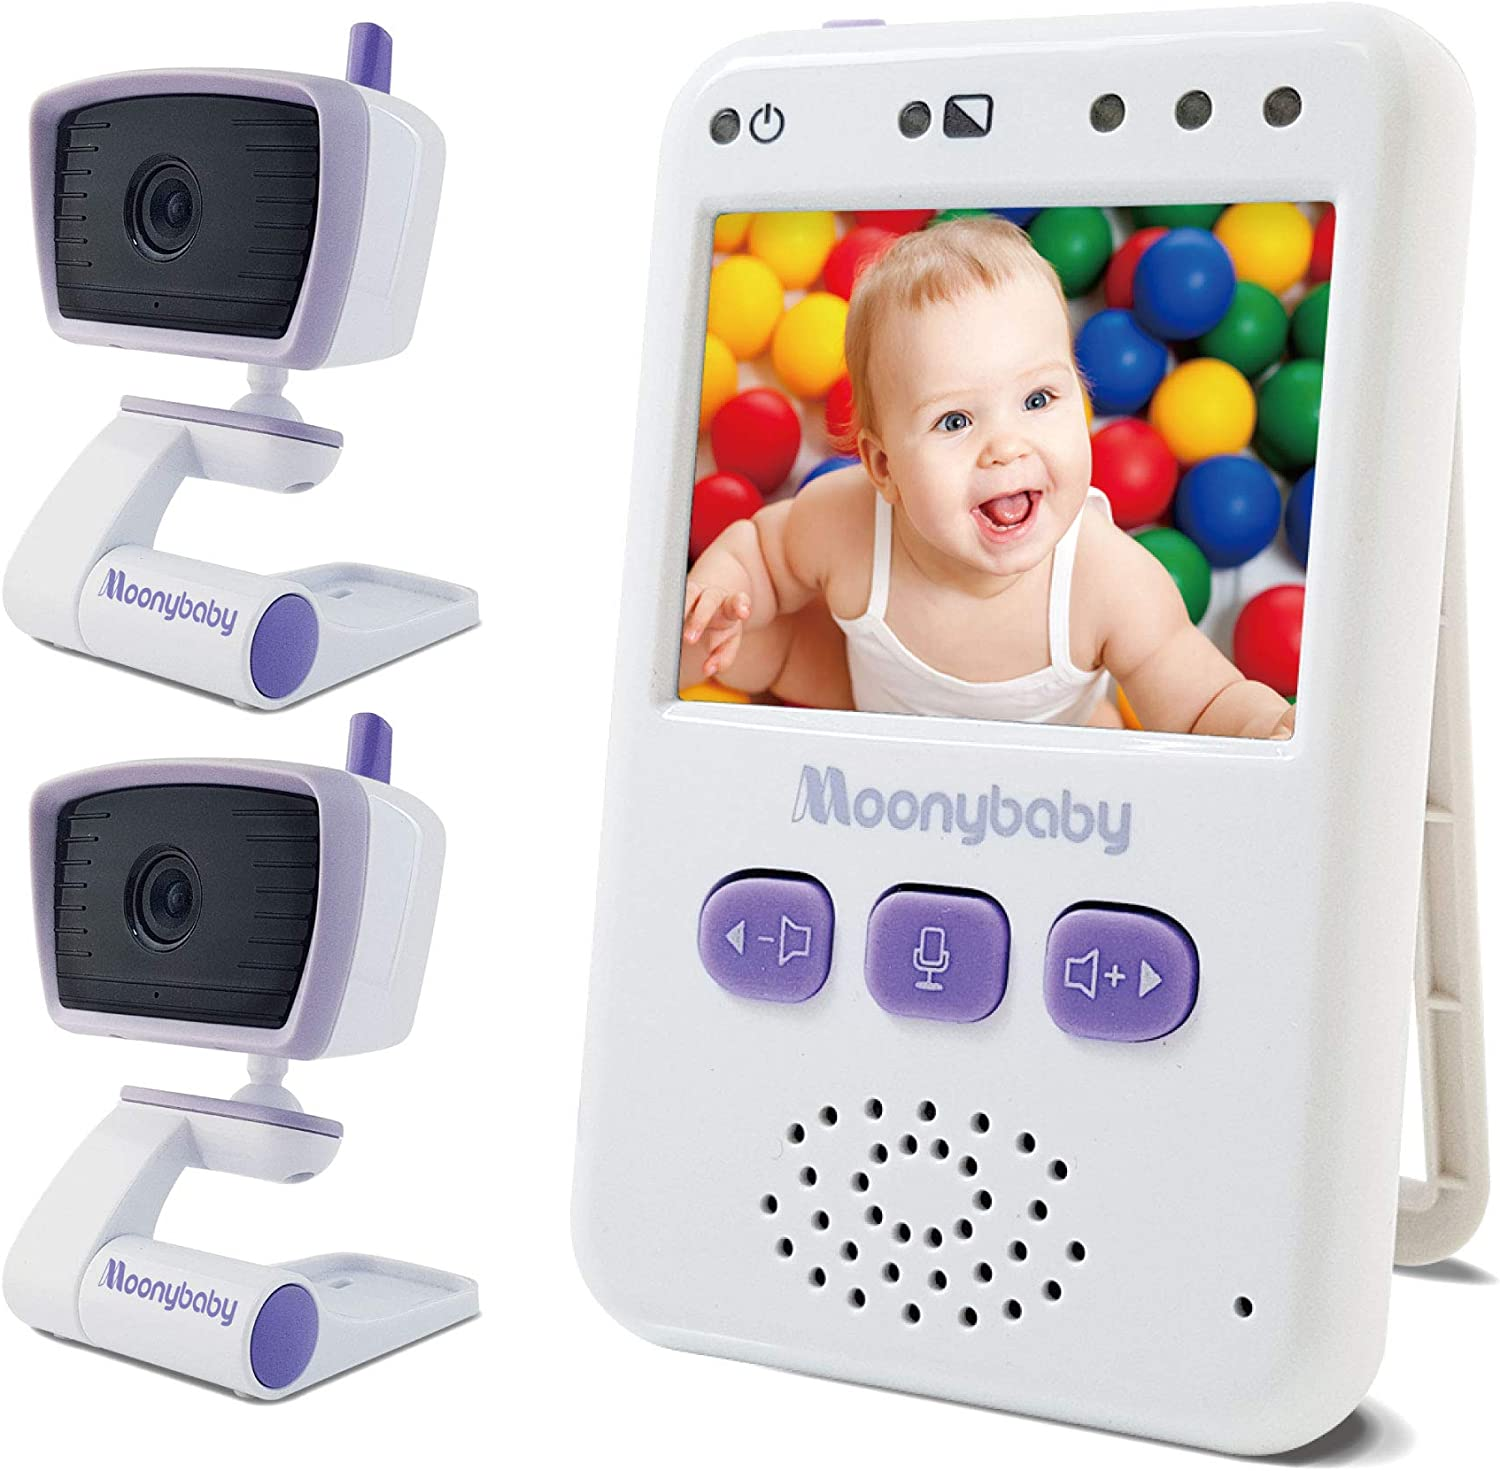 Moonybaby Long Range No WiFi Baby Monitor, 2 Cameras and one Monitor, Auto Night Vision, 2 Way Talk Back, Zoom in, Power Saving and VOX, Value 100-2